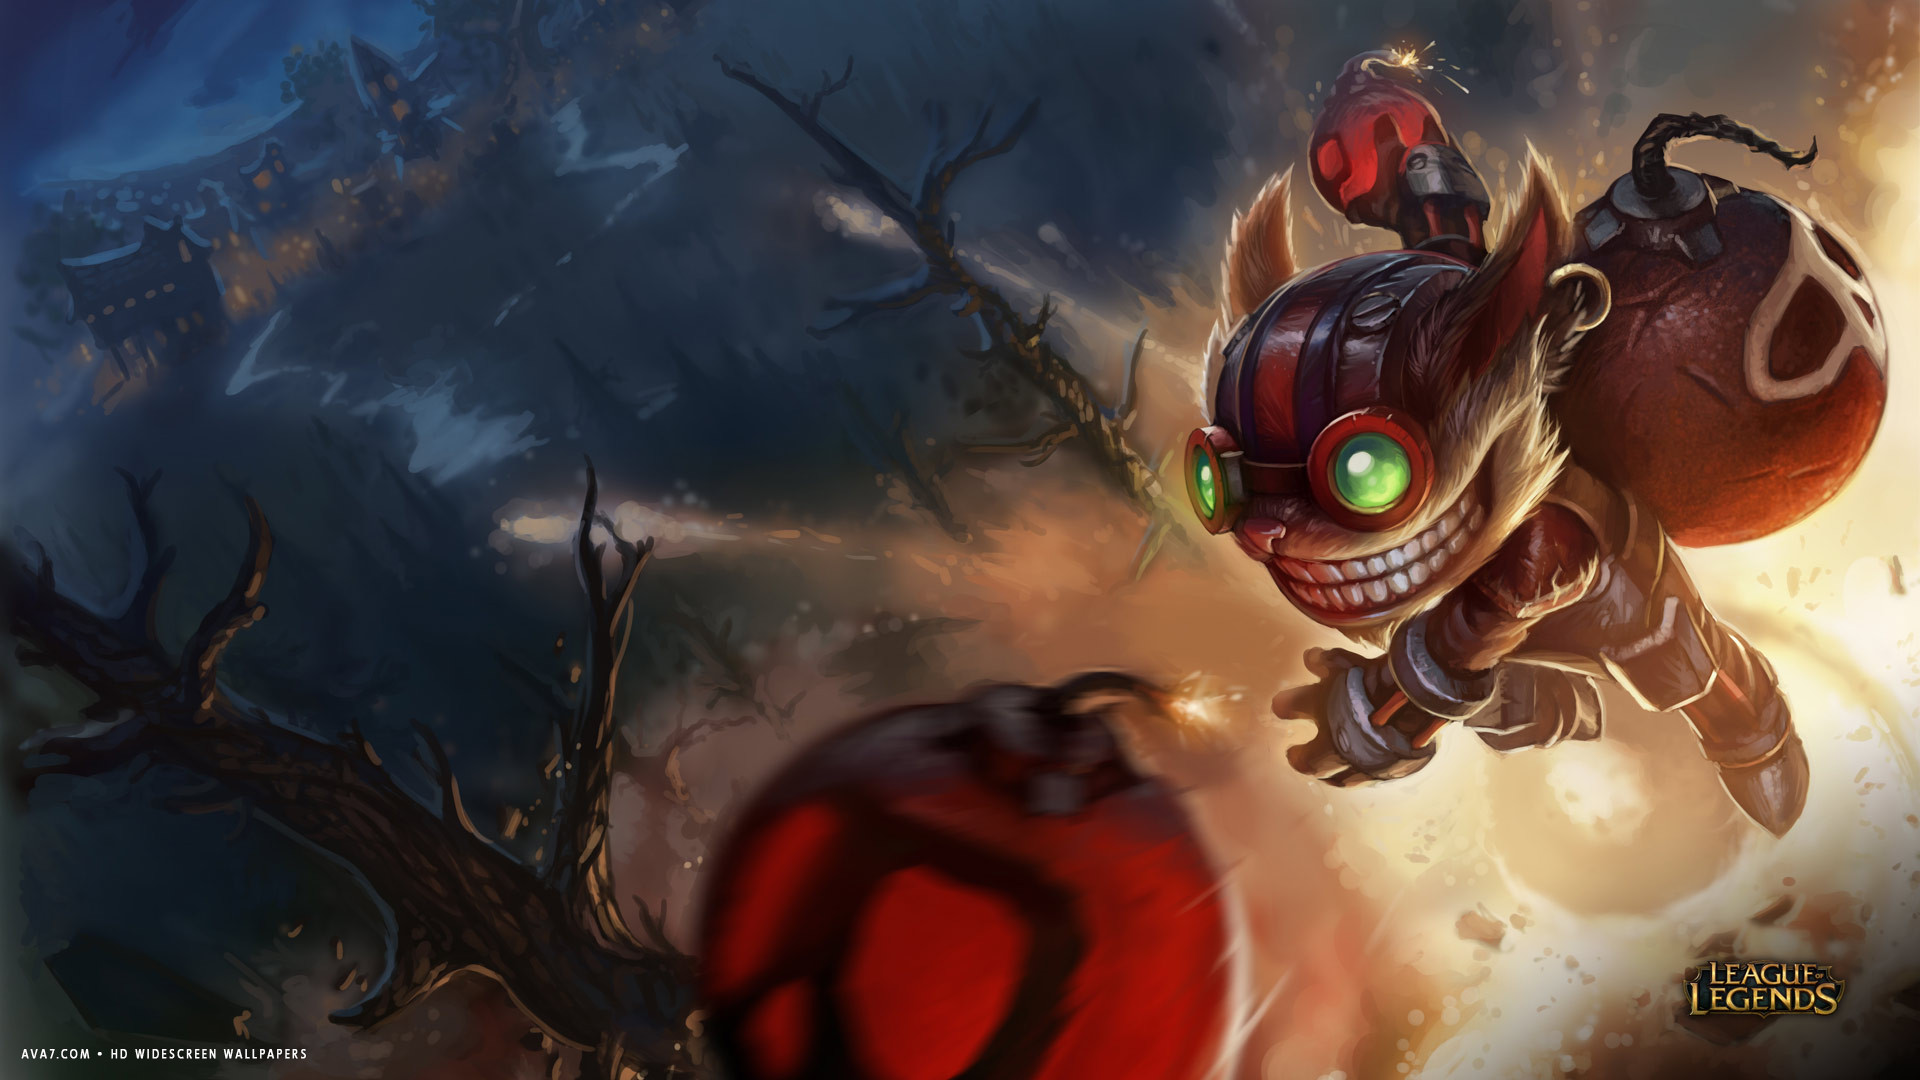 Soccer Girl Wallpaper League Of Legends Game Lol Ziggs Bomb Hd Widescreen